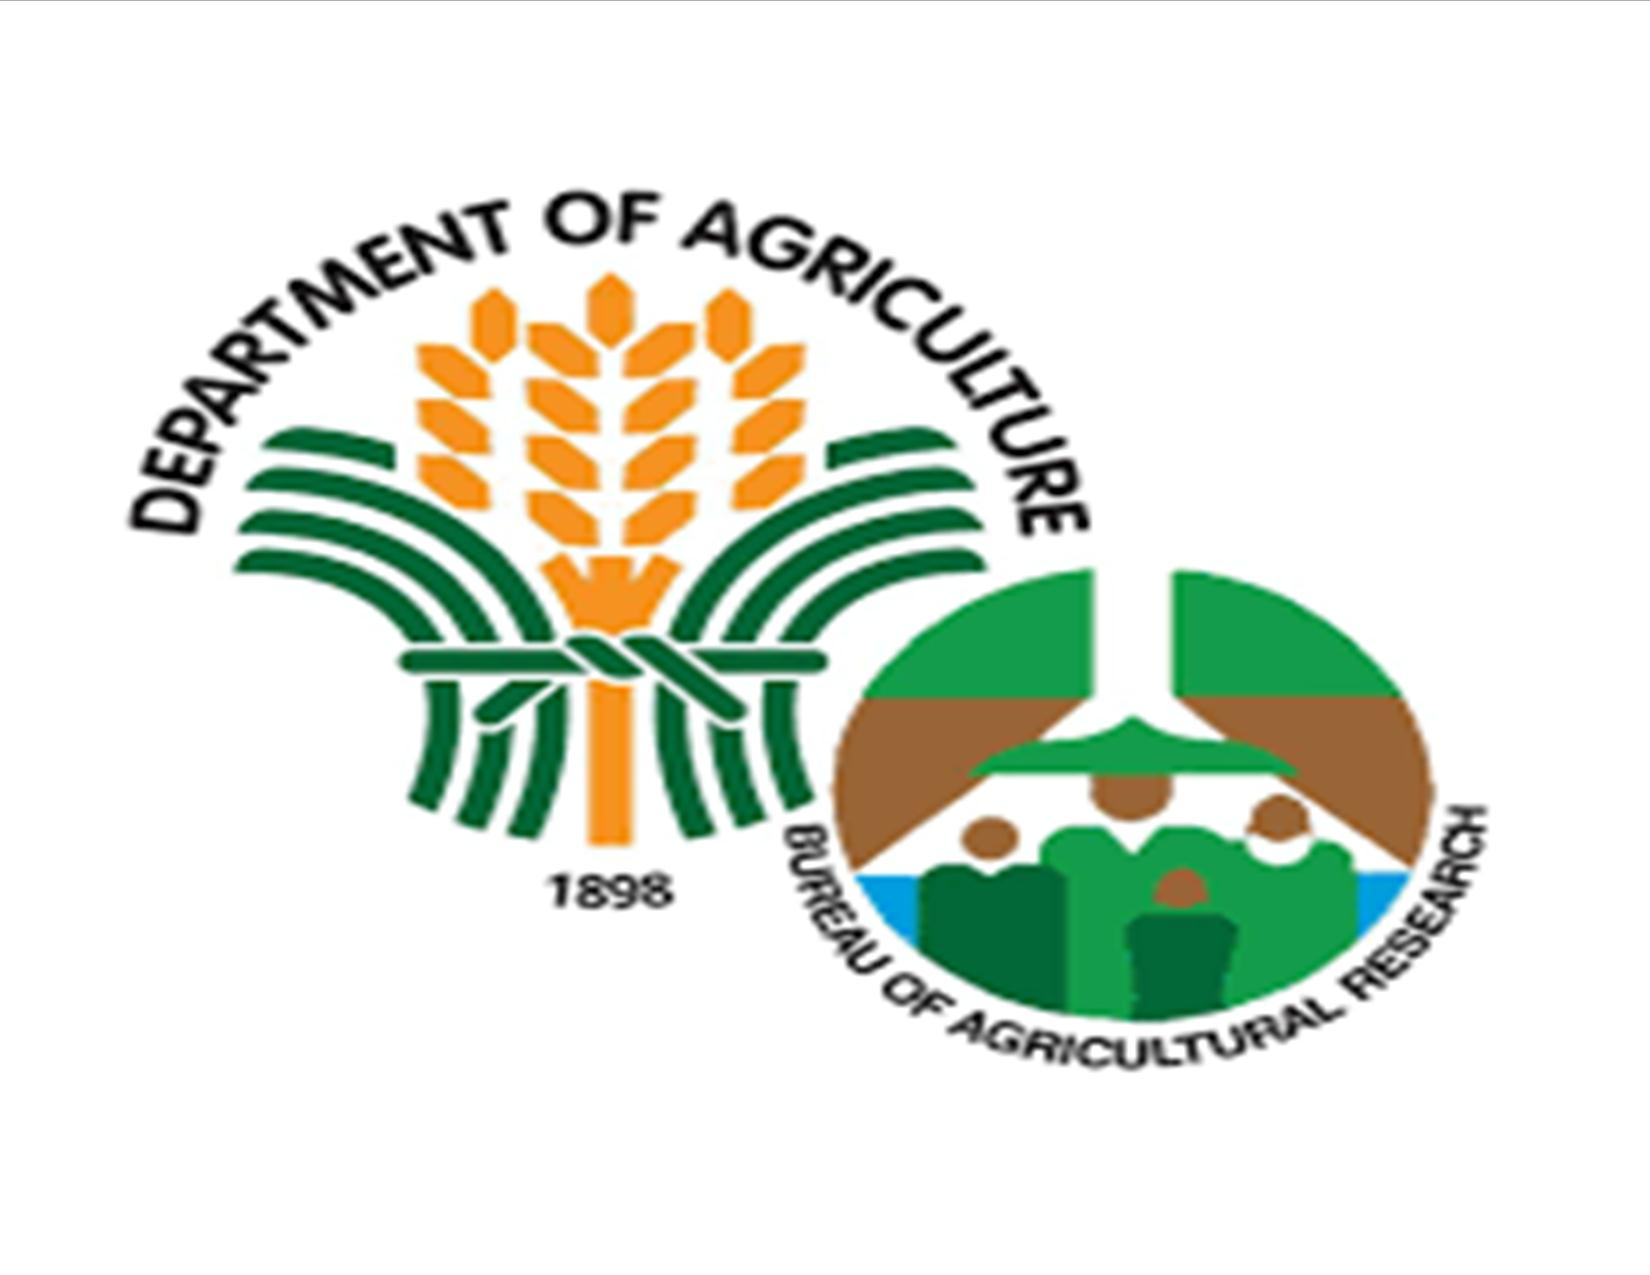 bureau of agricultural research-department of agriculture